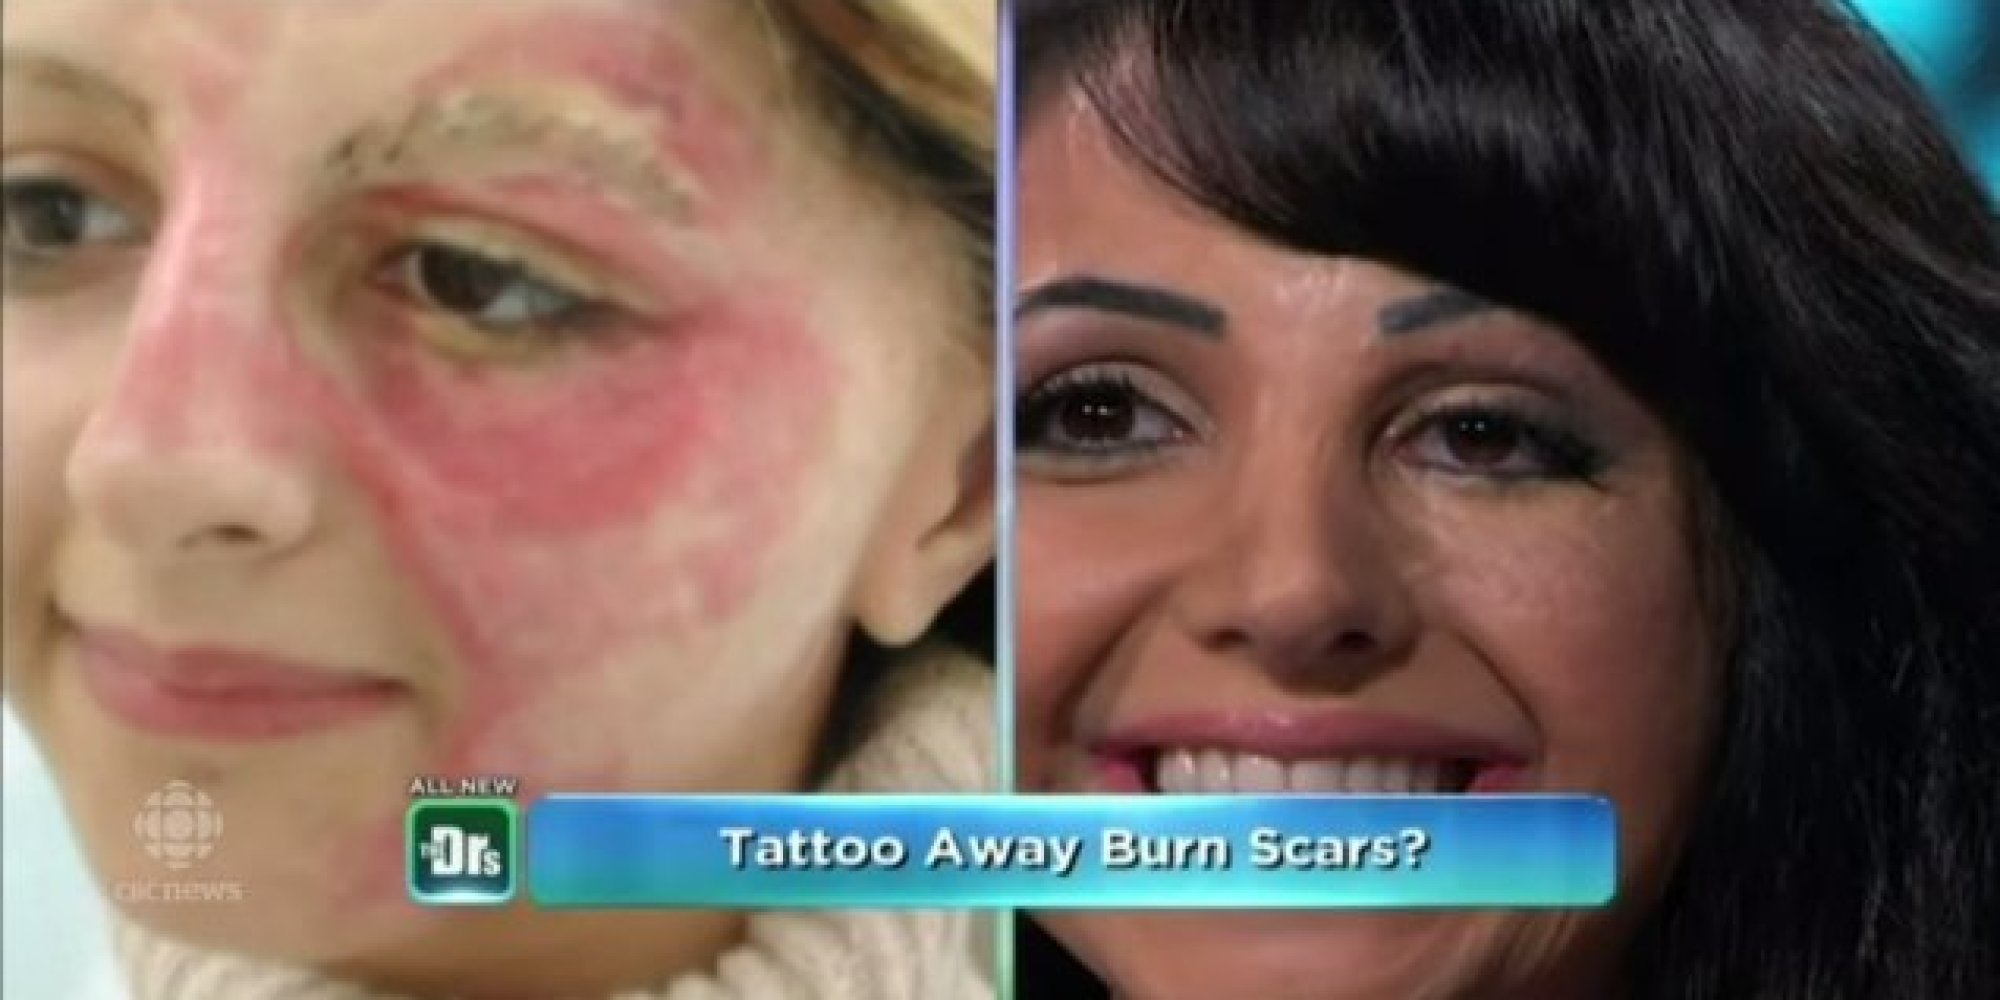 Tattoo Skin Color Over Scar